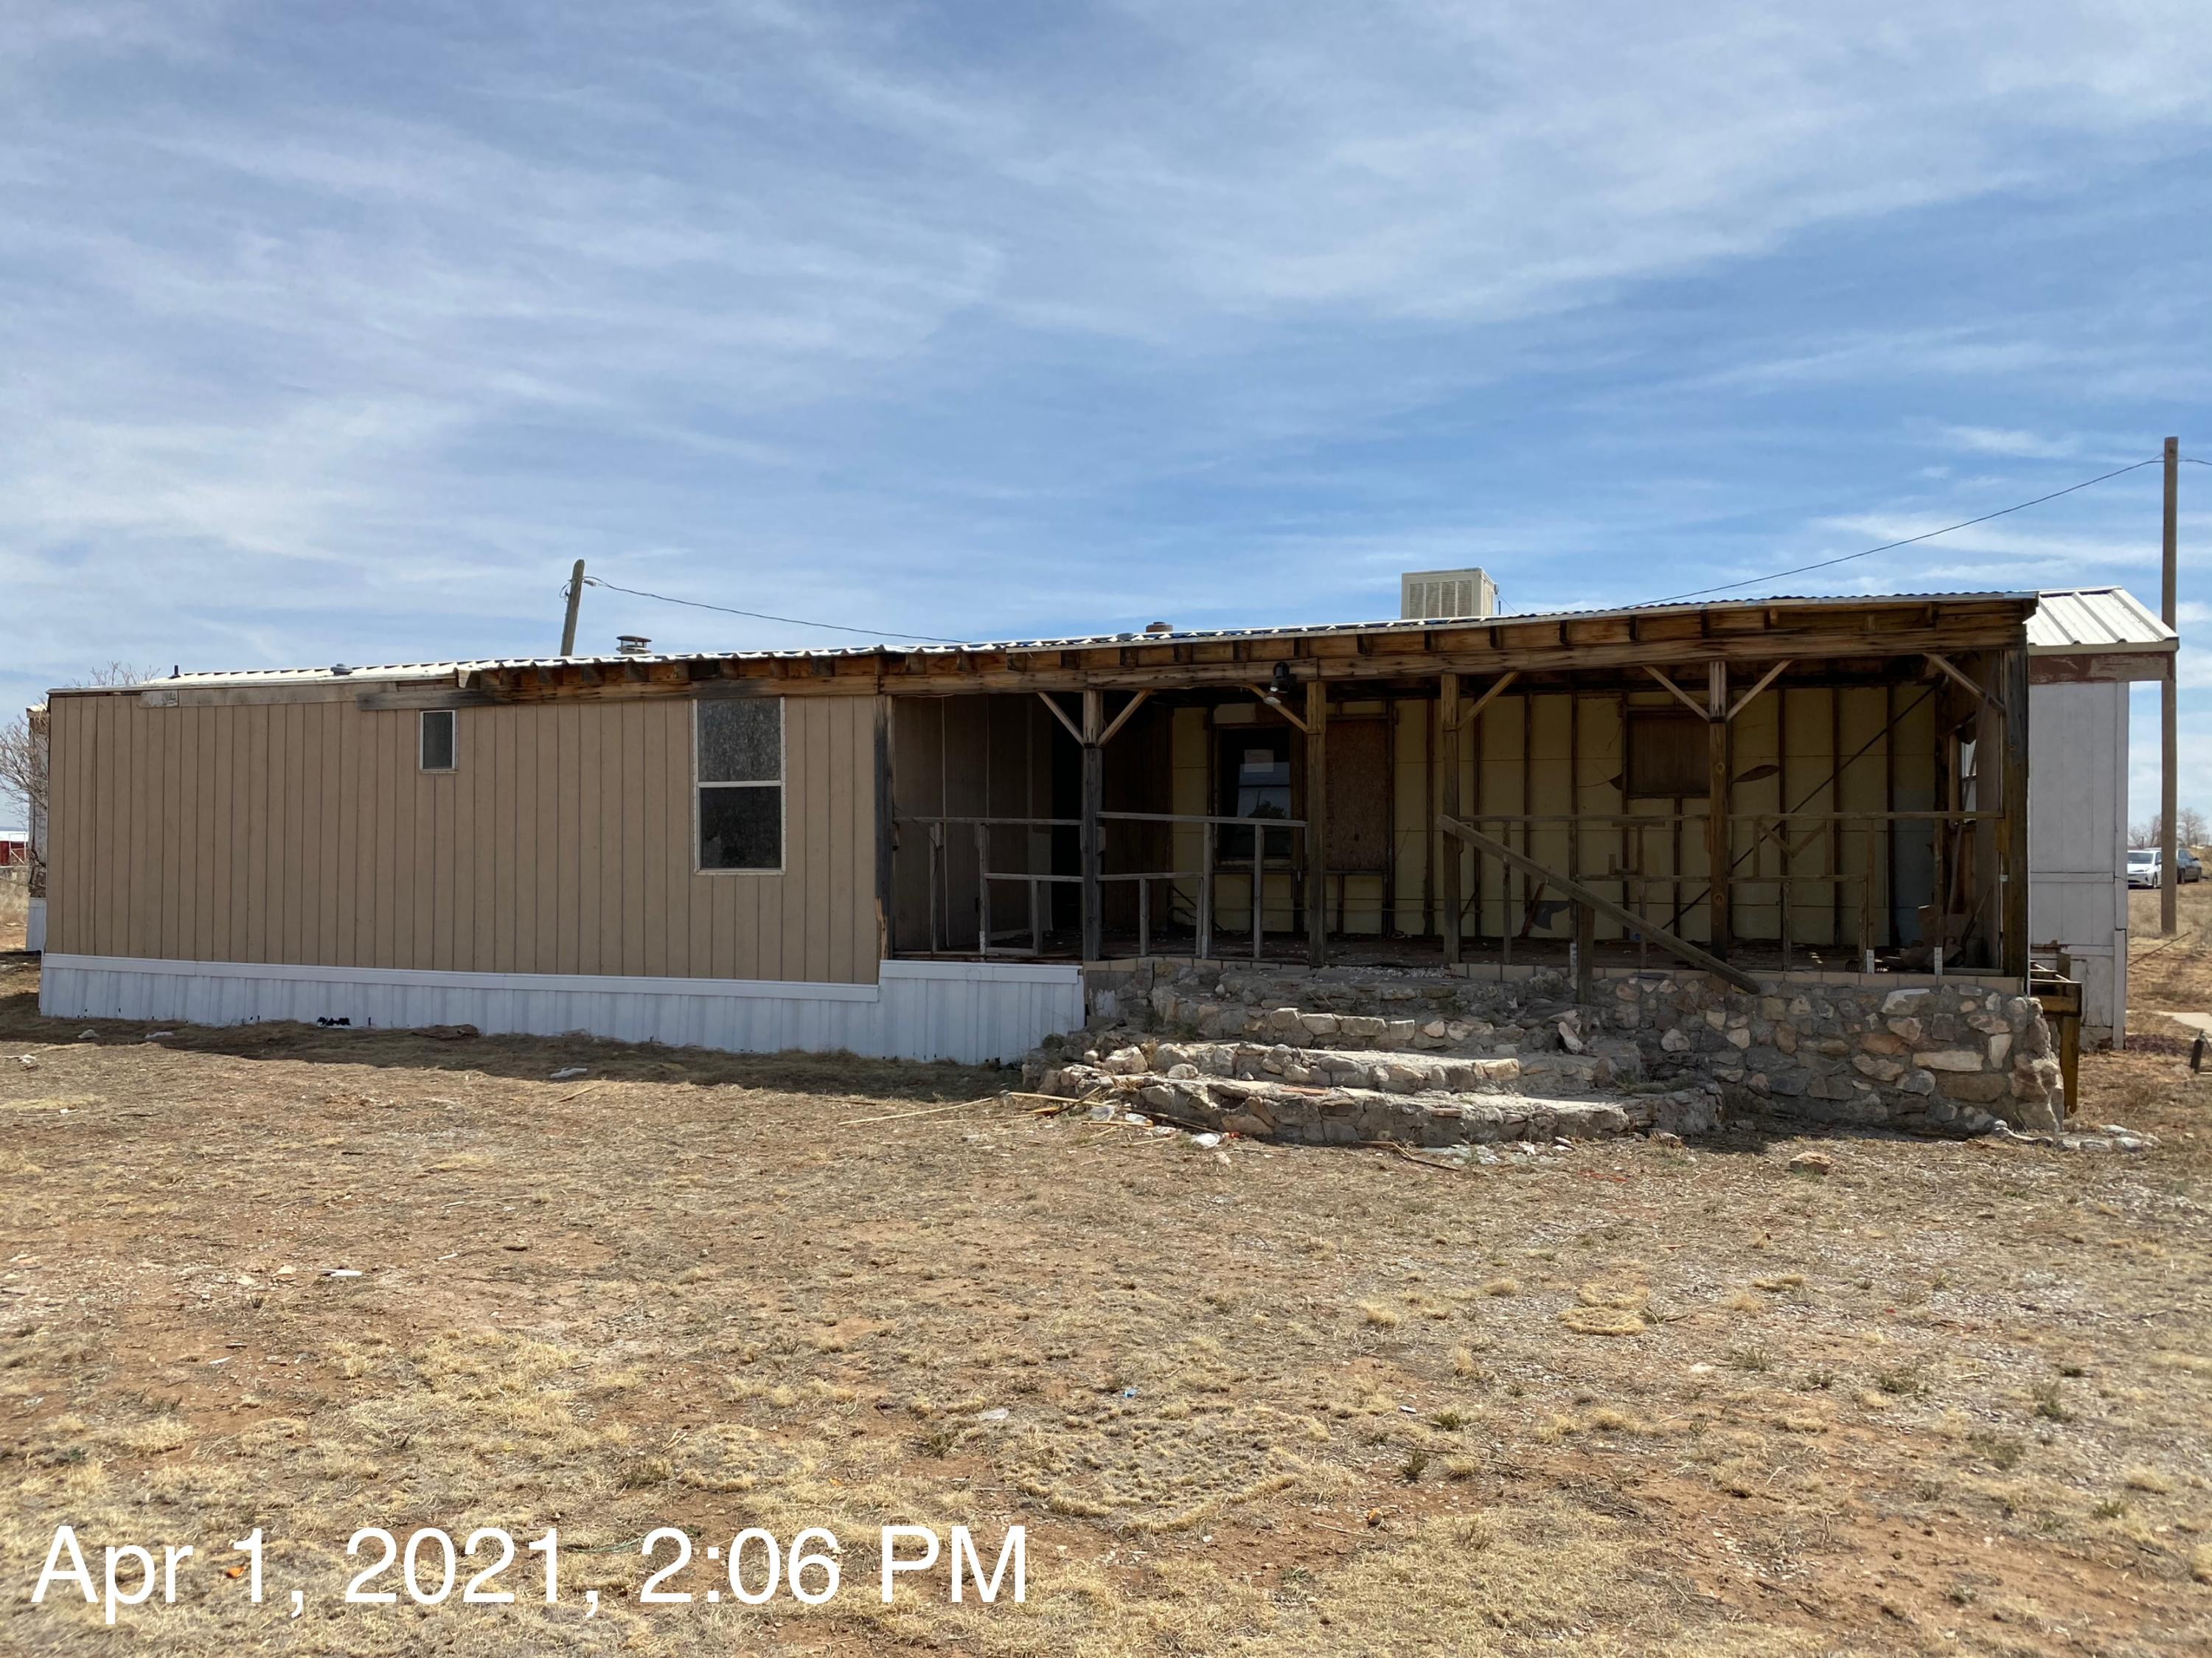 Single Wide is not structurally sound and has holes in the floors, walls & roof. Seller has no info on well or septic. Property sold as is.